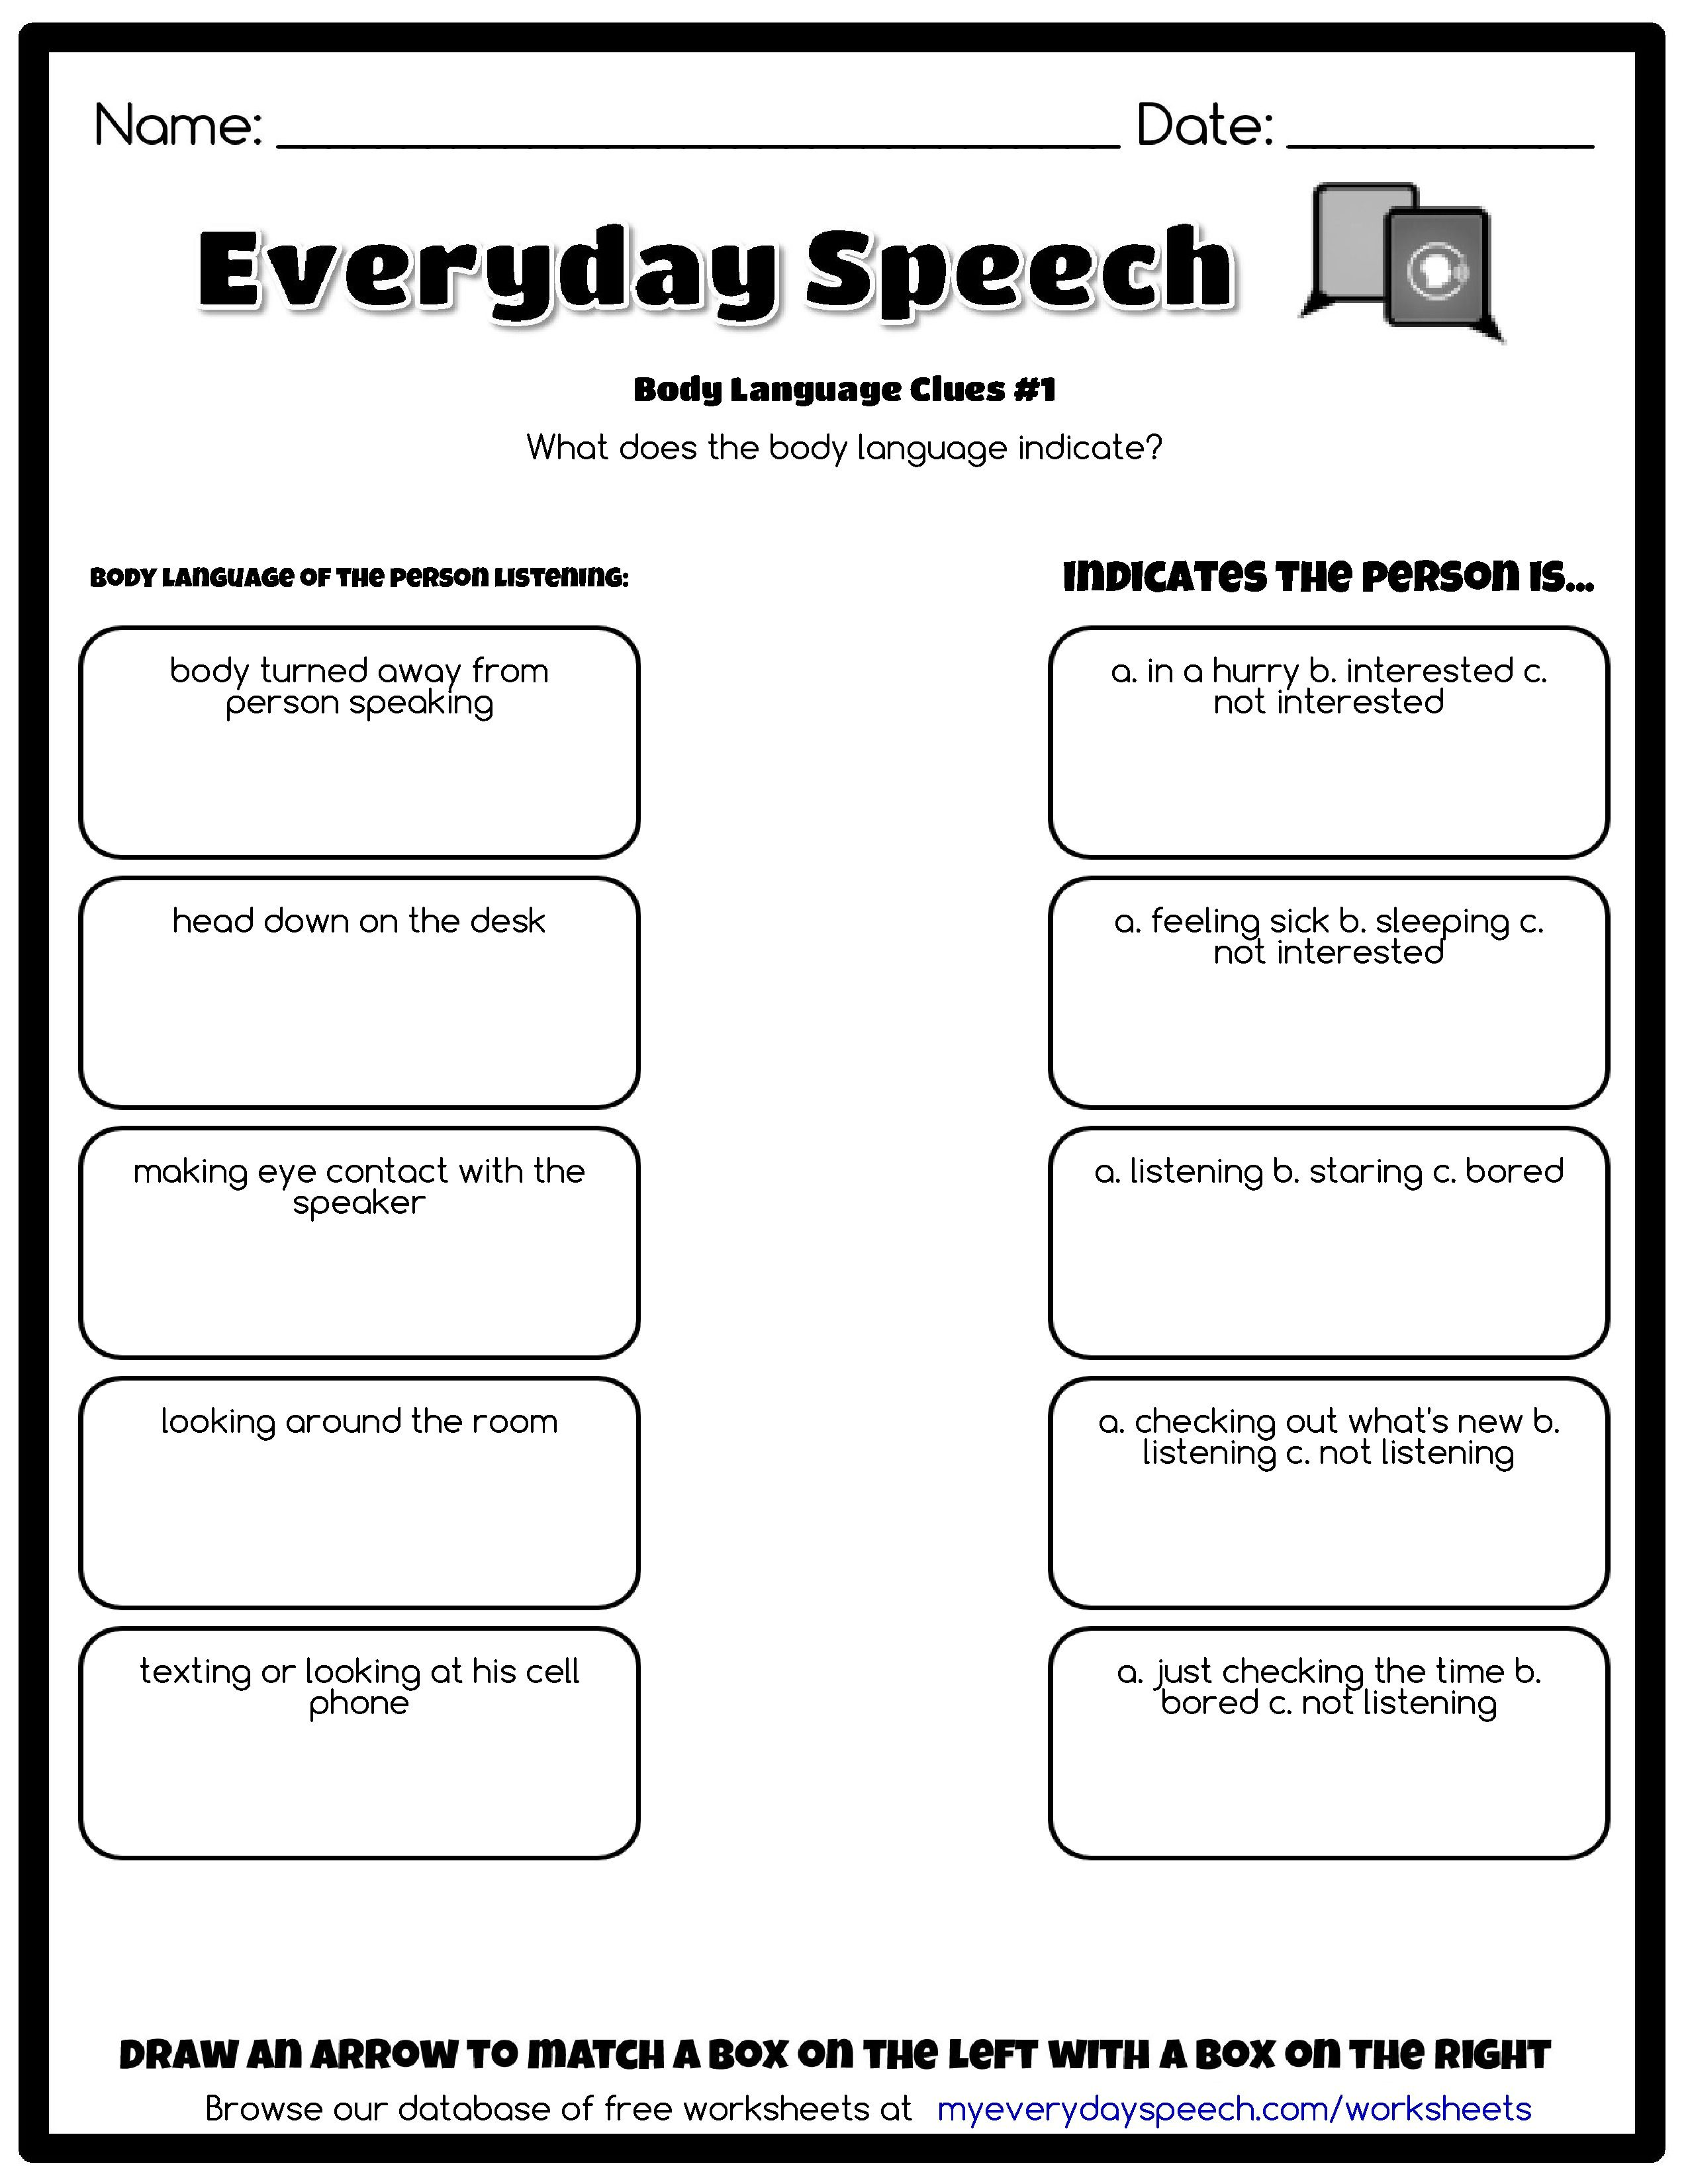 Worksheets Time Worksheet Generator made using everyday speechs worksheet creator body language clues what does the language